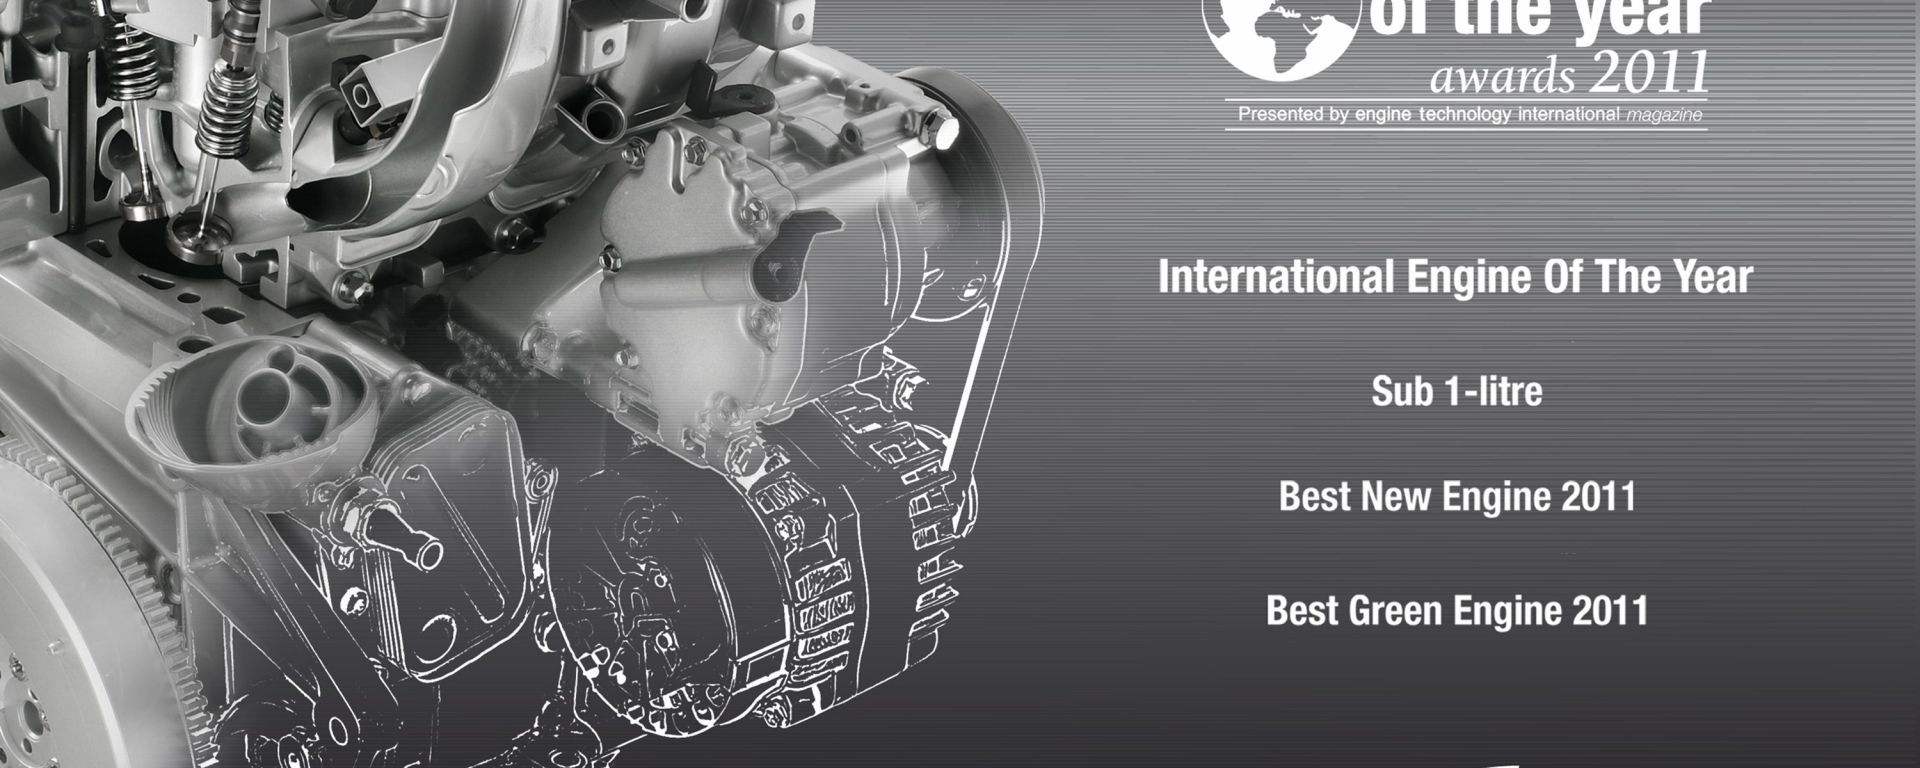 Engine of the Year 2011